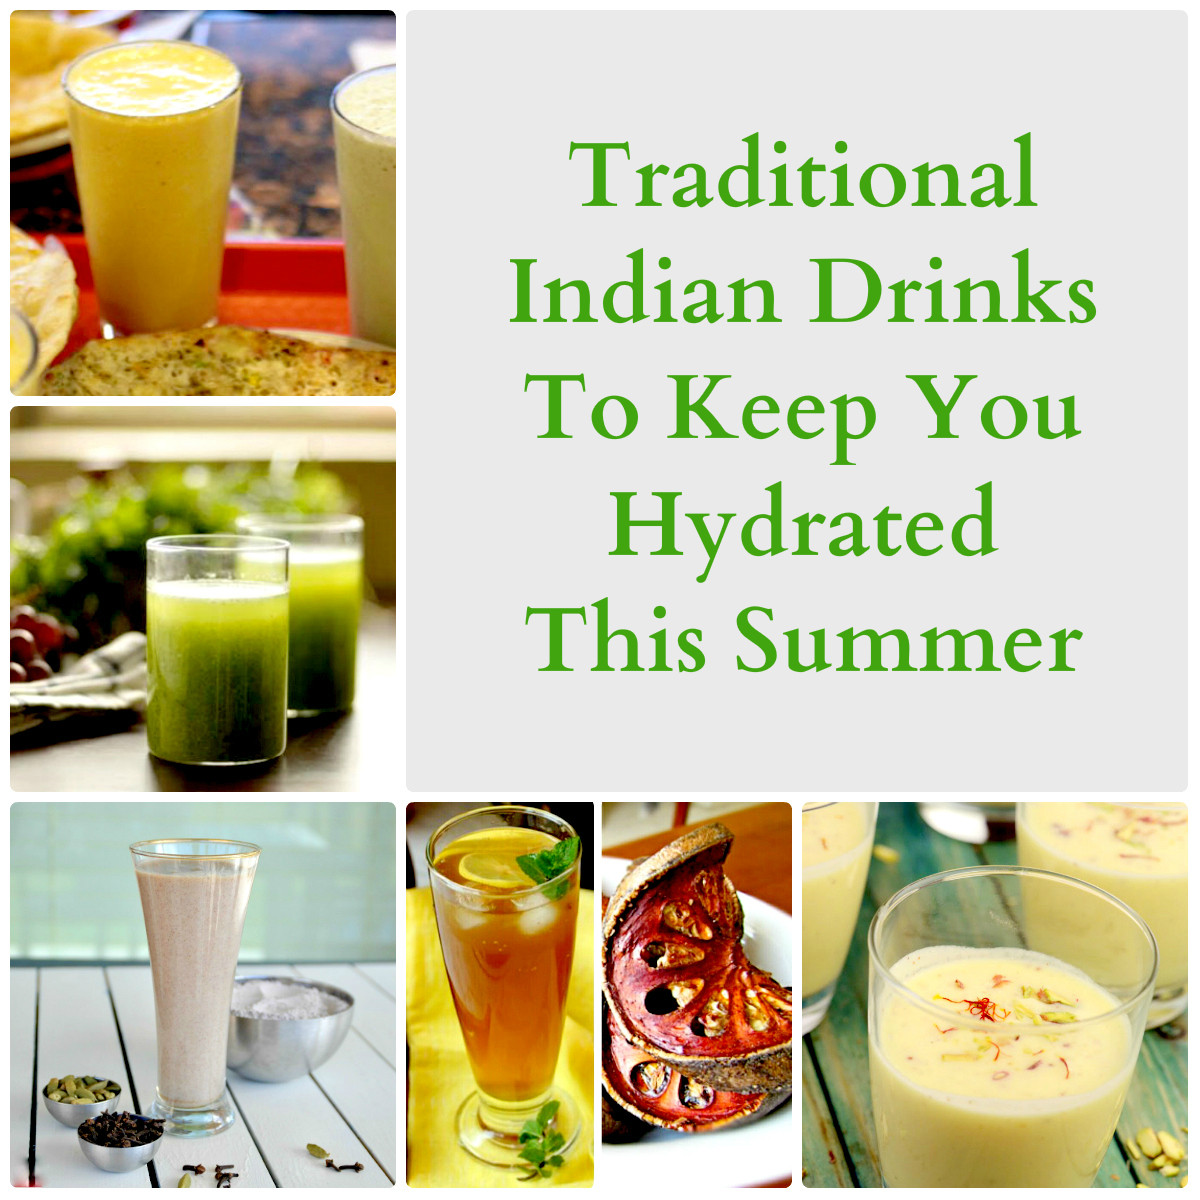 Indian Drinks For Summer  Traditional Indian Drinks To Keep You Hydrated This Summer